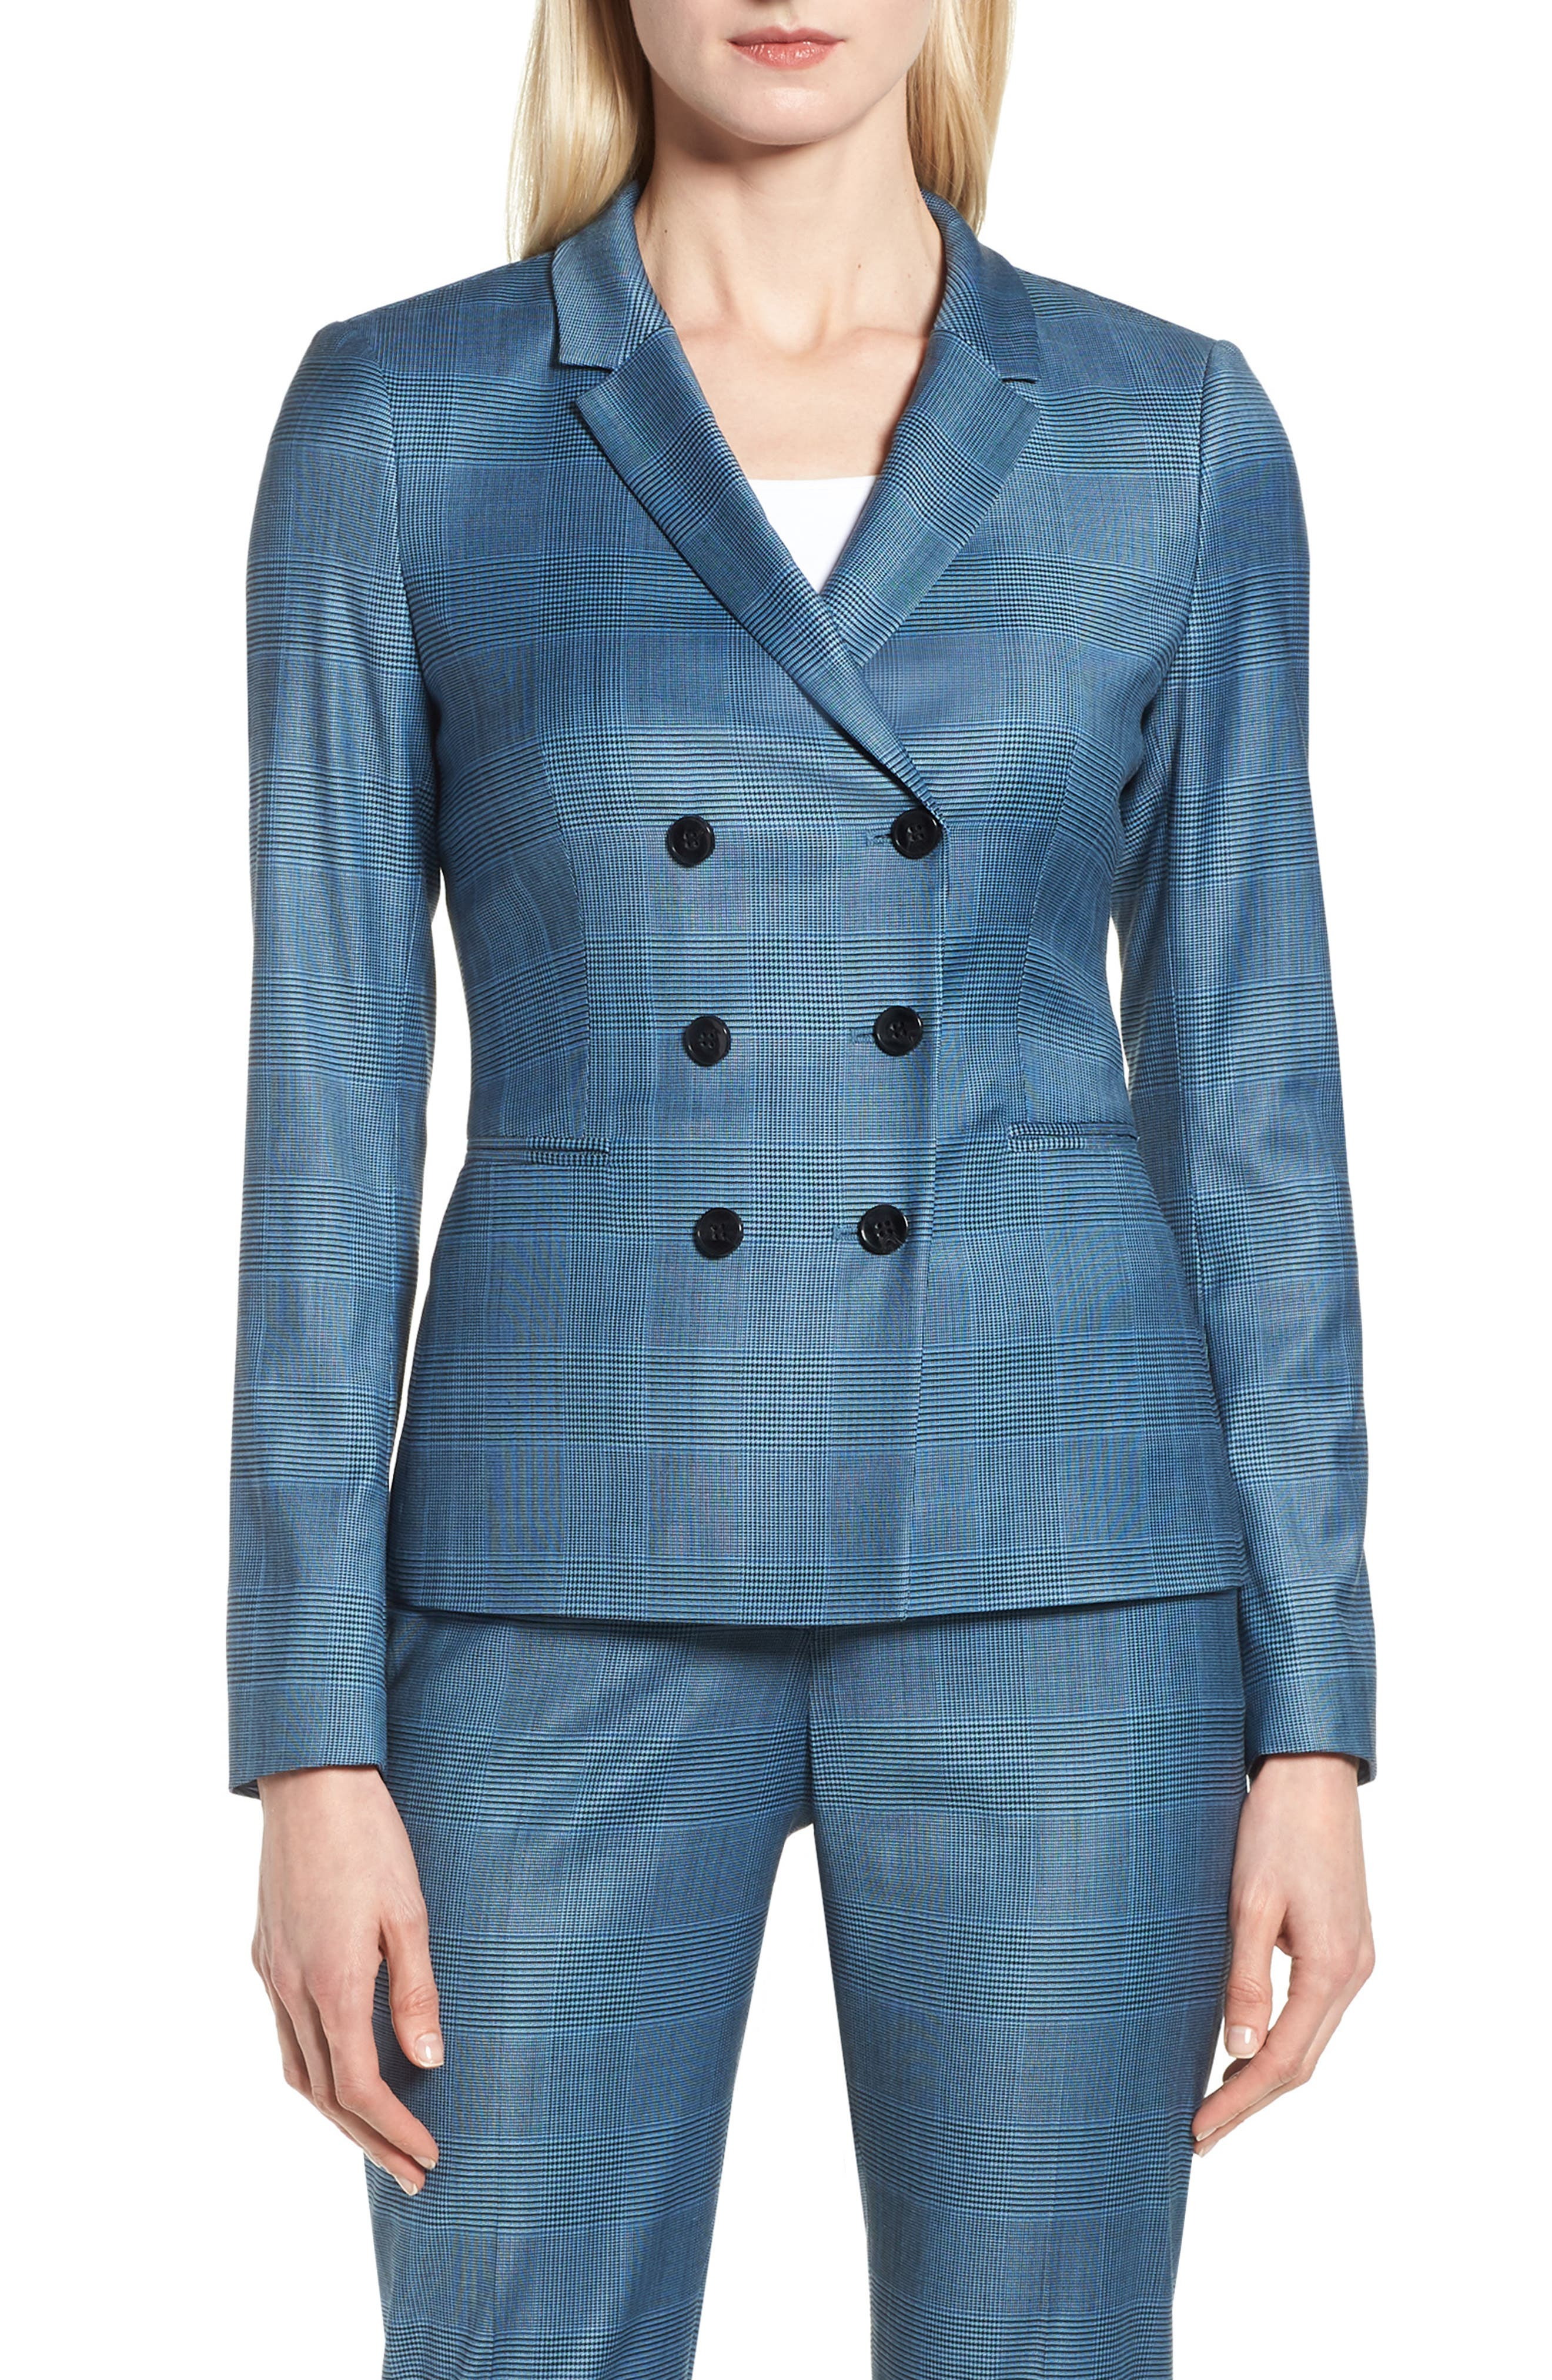 Jelaya Glencheck Double Breasted Suit Jacket,                         Main,                         color, 467